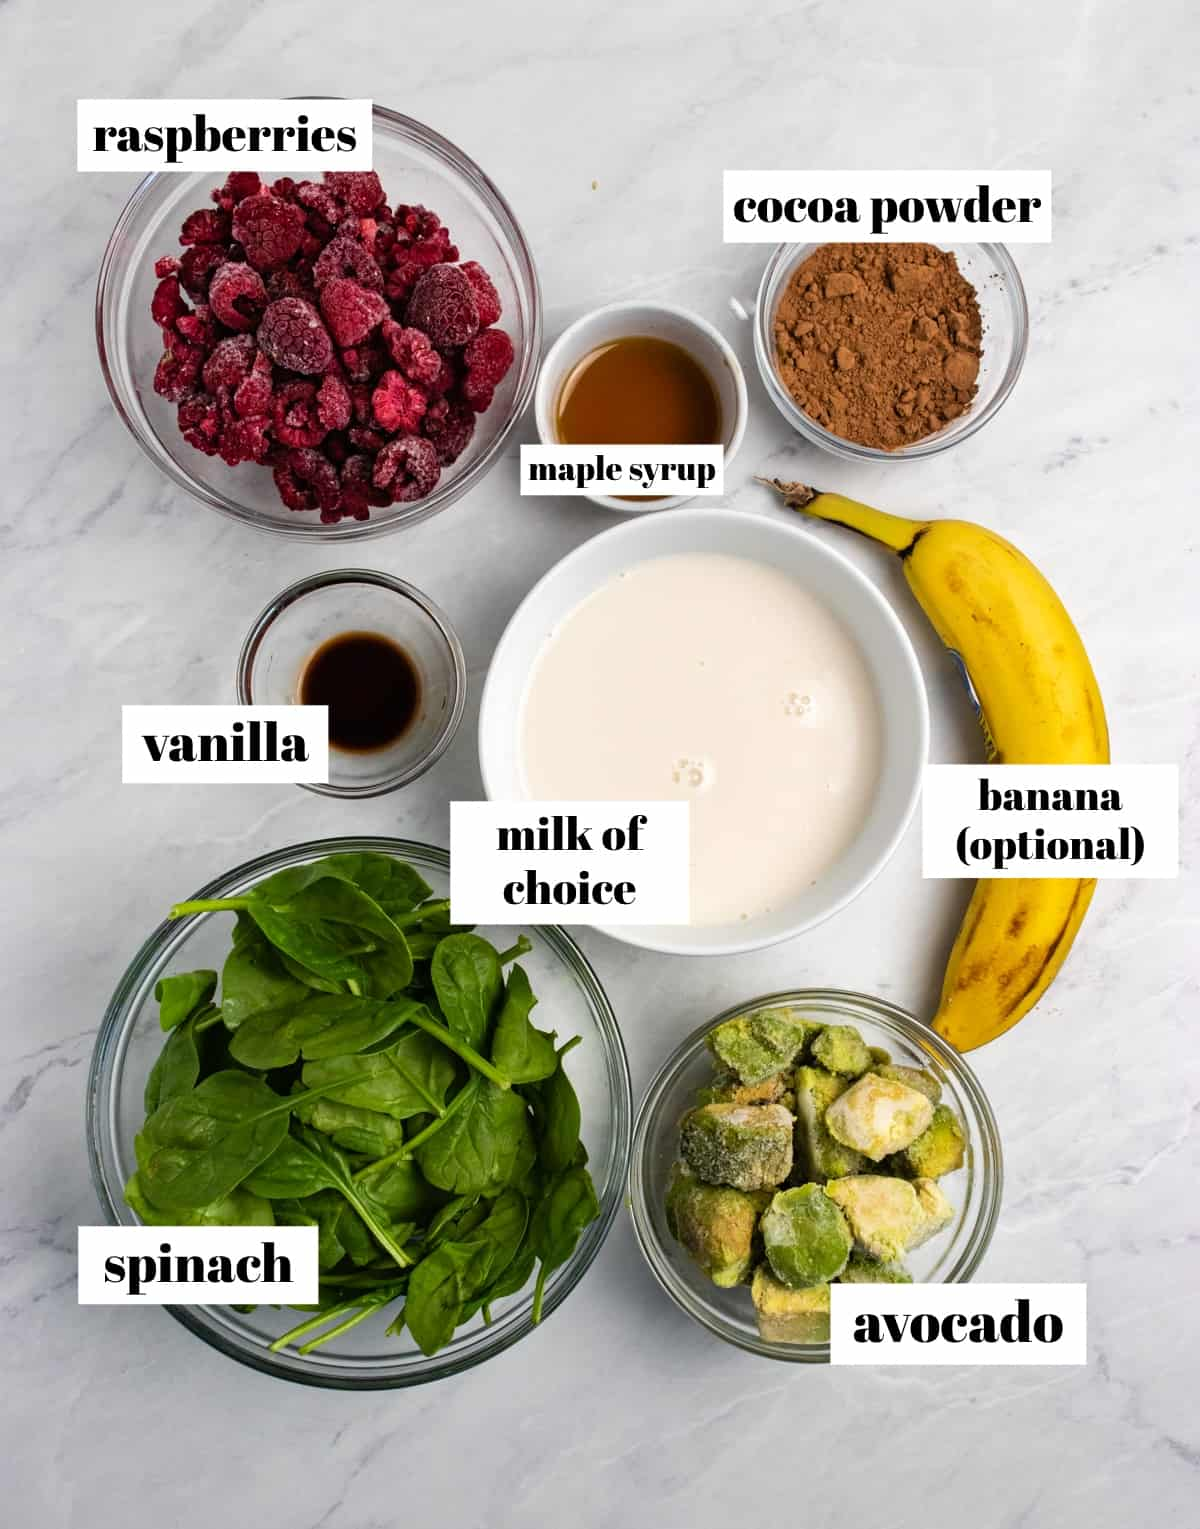 Spinach, cocoa powder, avocado, banana and ingredients labeled on counter.